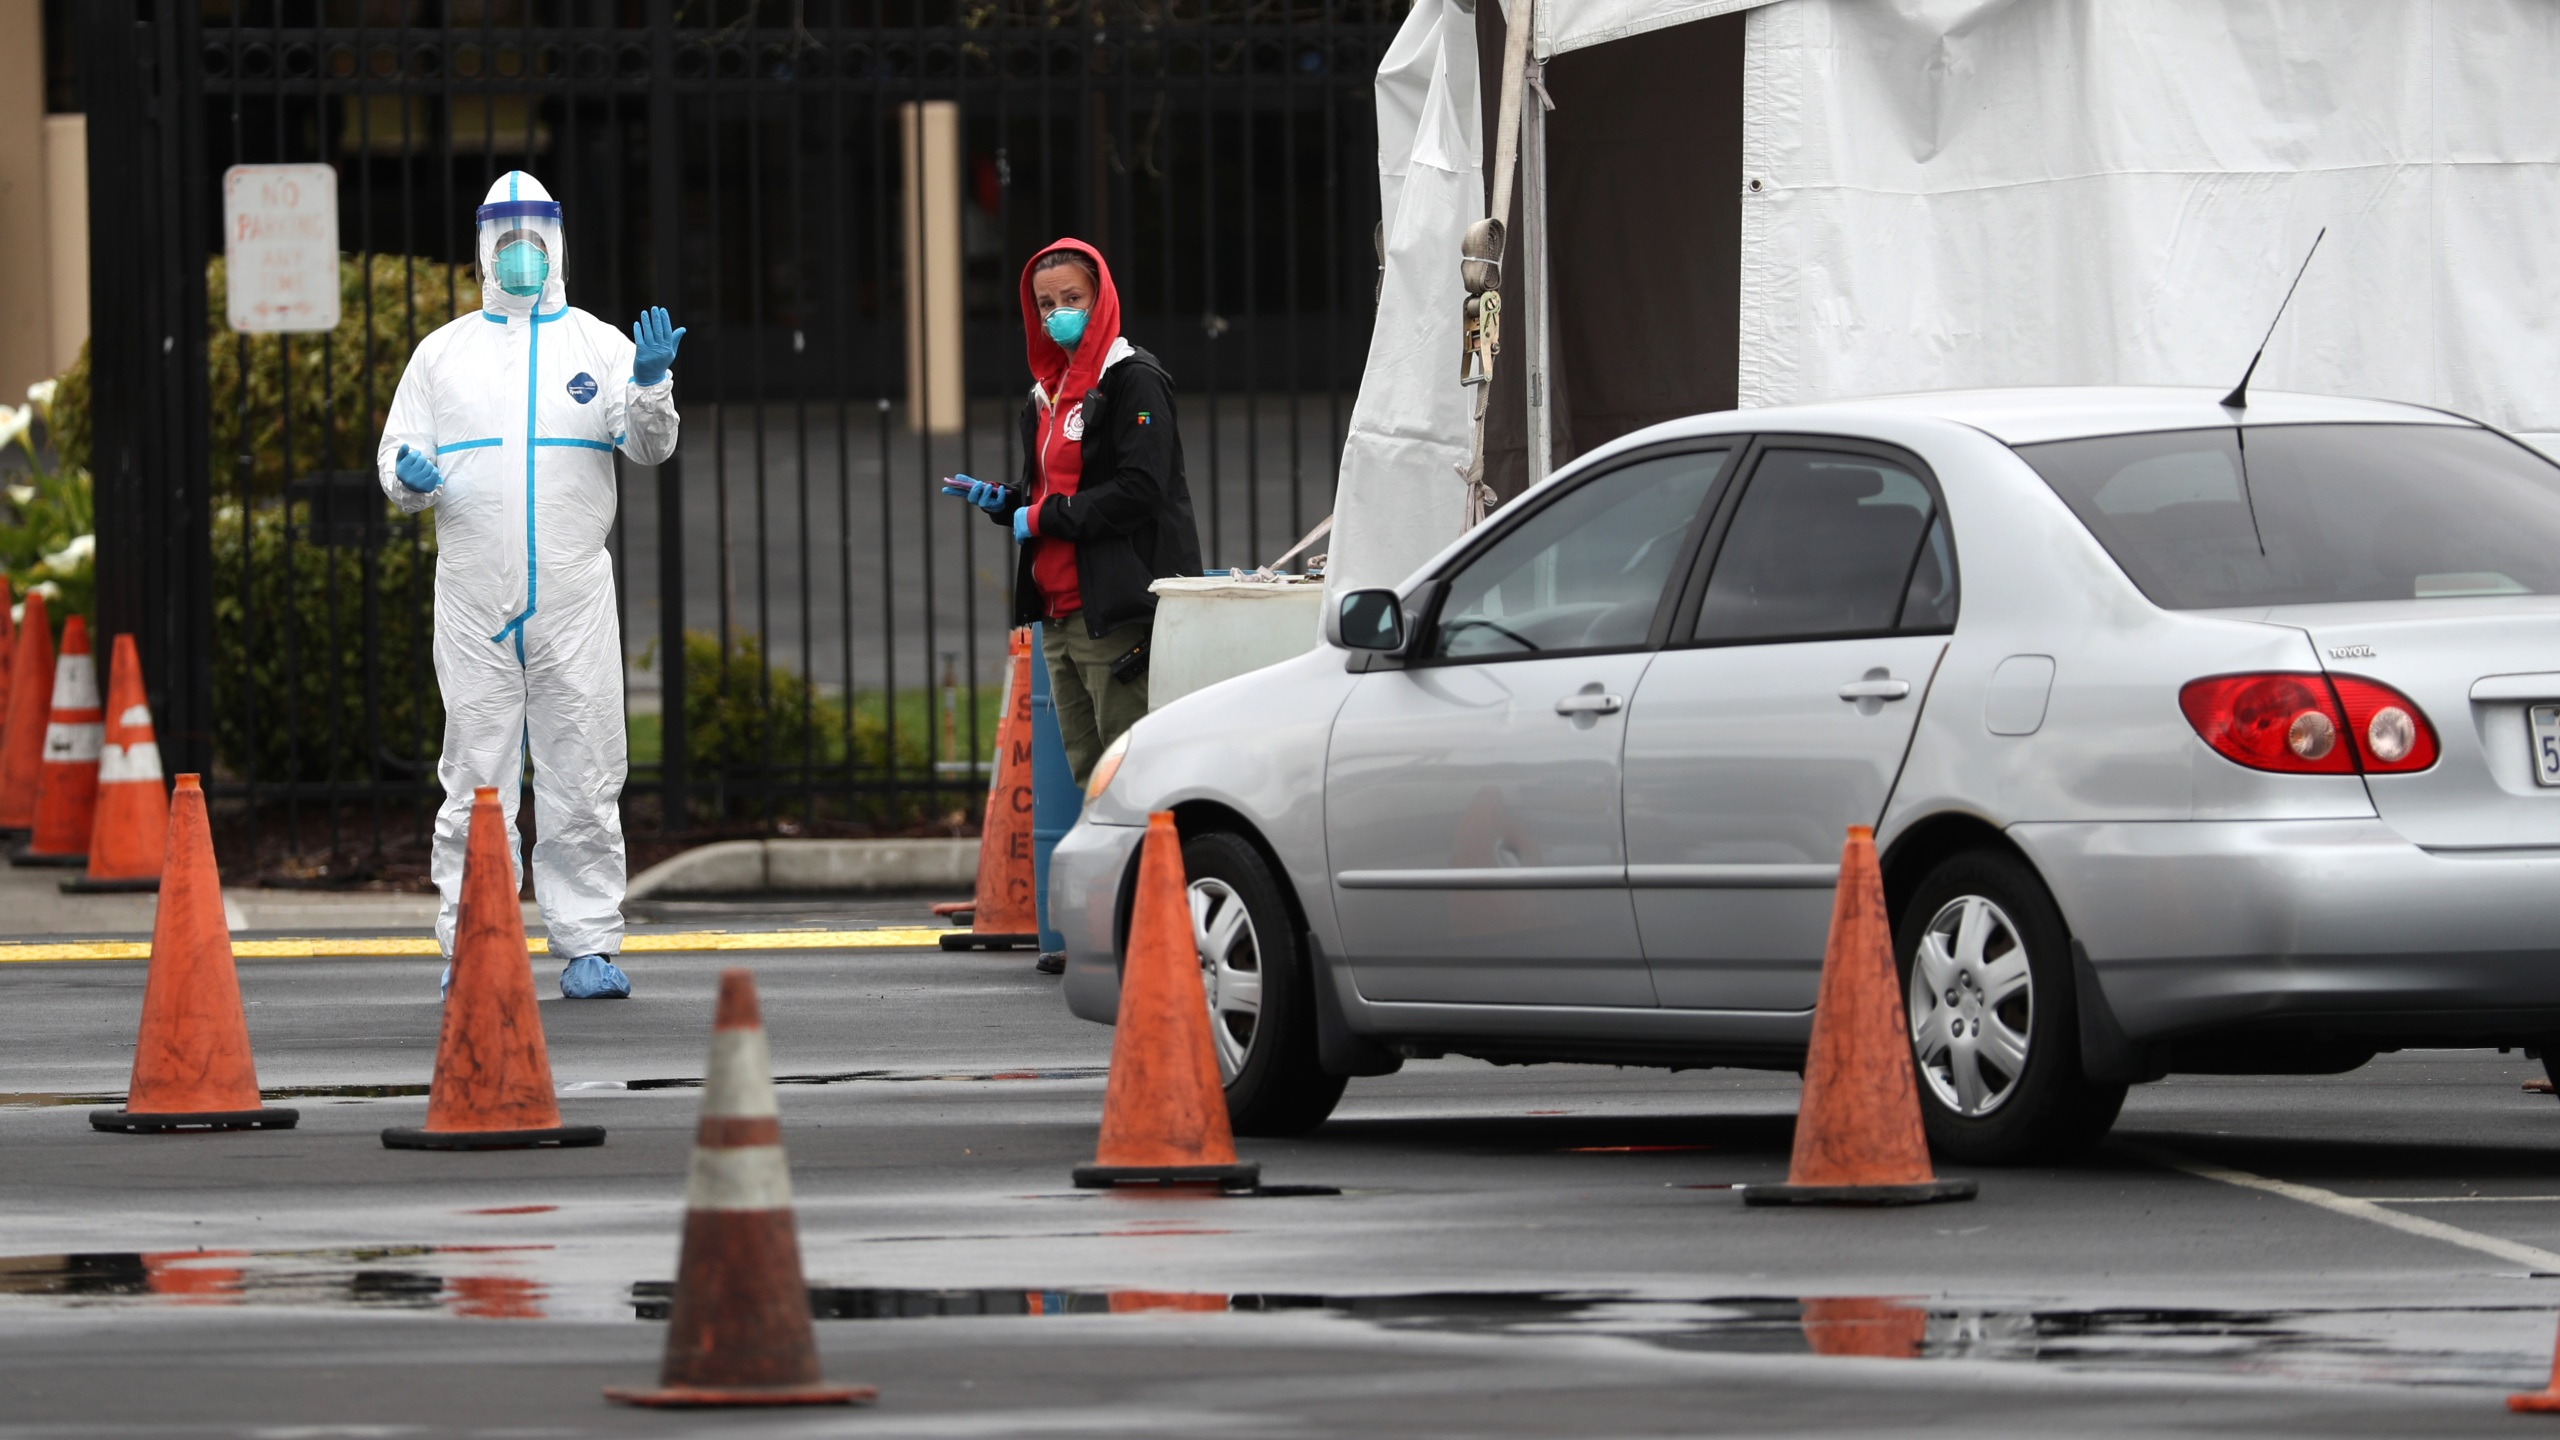 A medical worker guides a car that is going through a coronavirus drive-thru test clinic at the San Mateo County Event Center on March 16, 2020, in San Mateo, California. (Justin Sullivan/Getty Images)